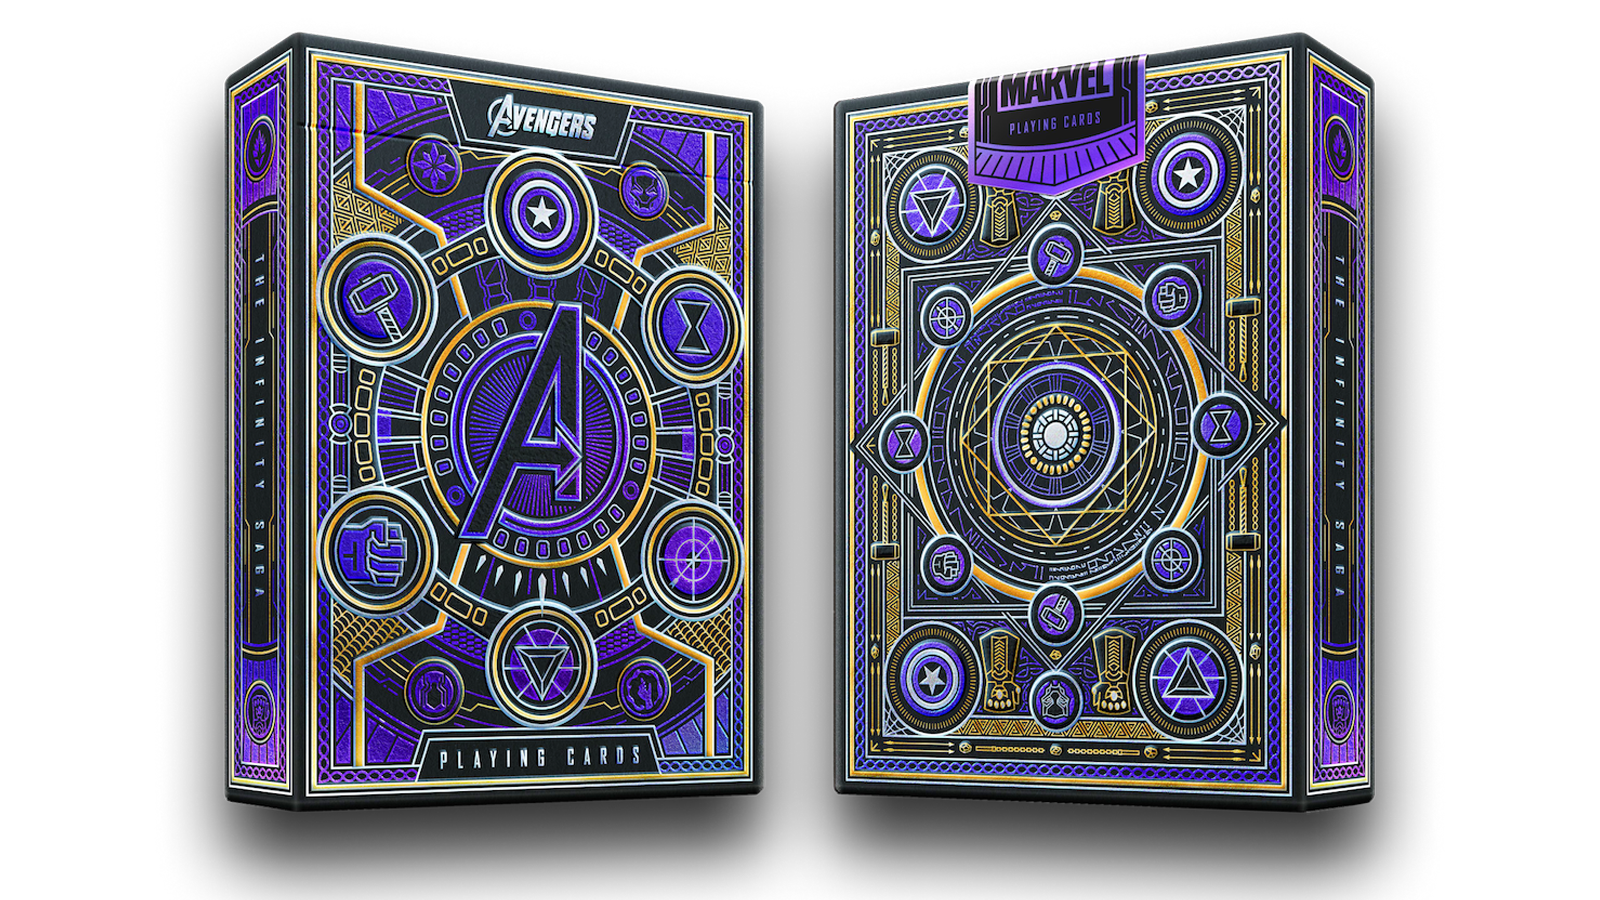 Fancy gilt themed packaging for the Avengers playing cards